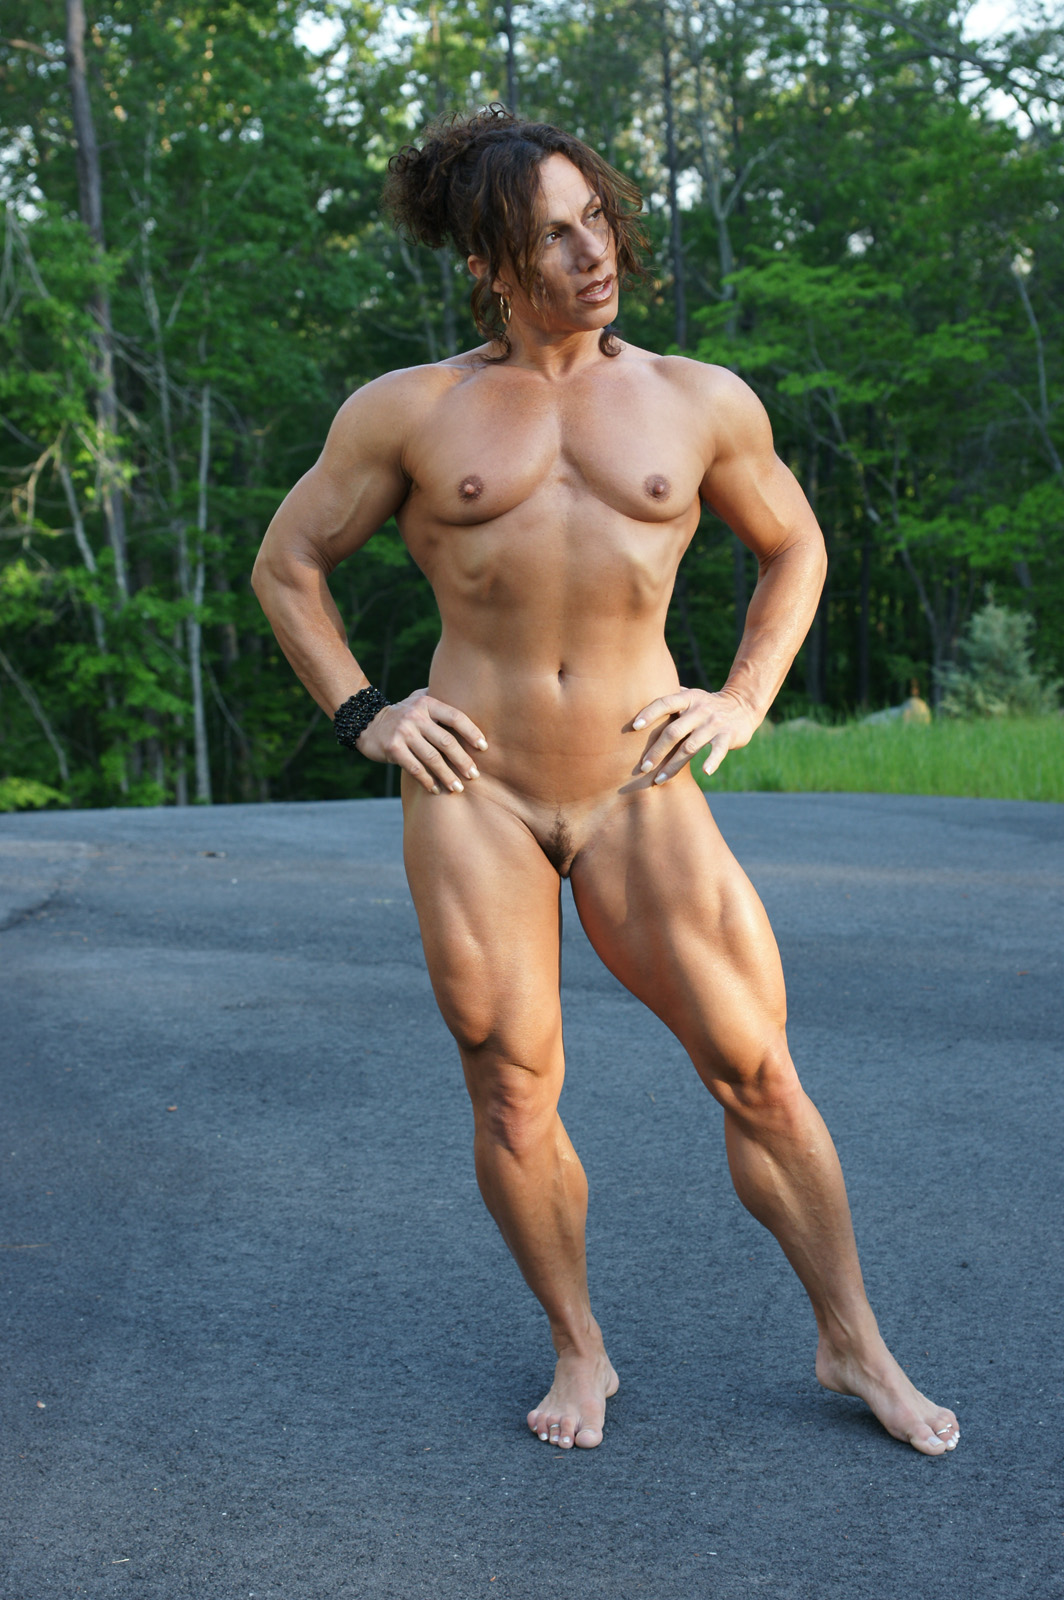 You Sexy female bodybuilding mude brilliant idea